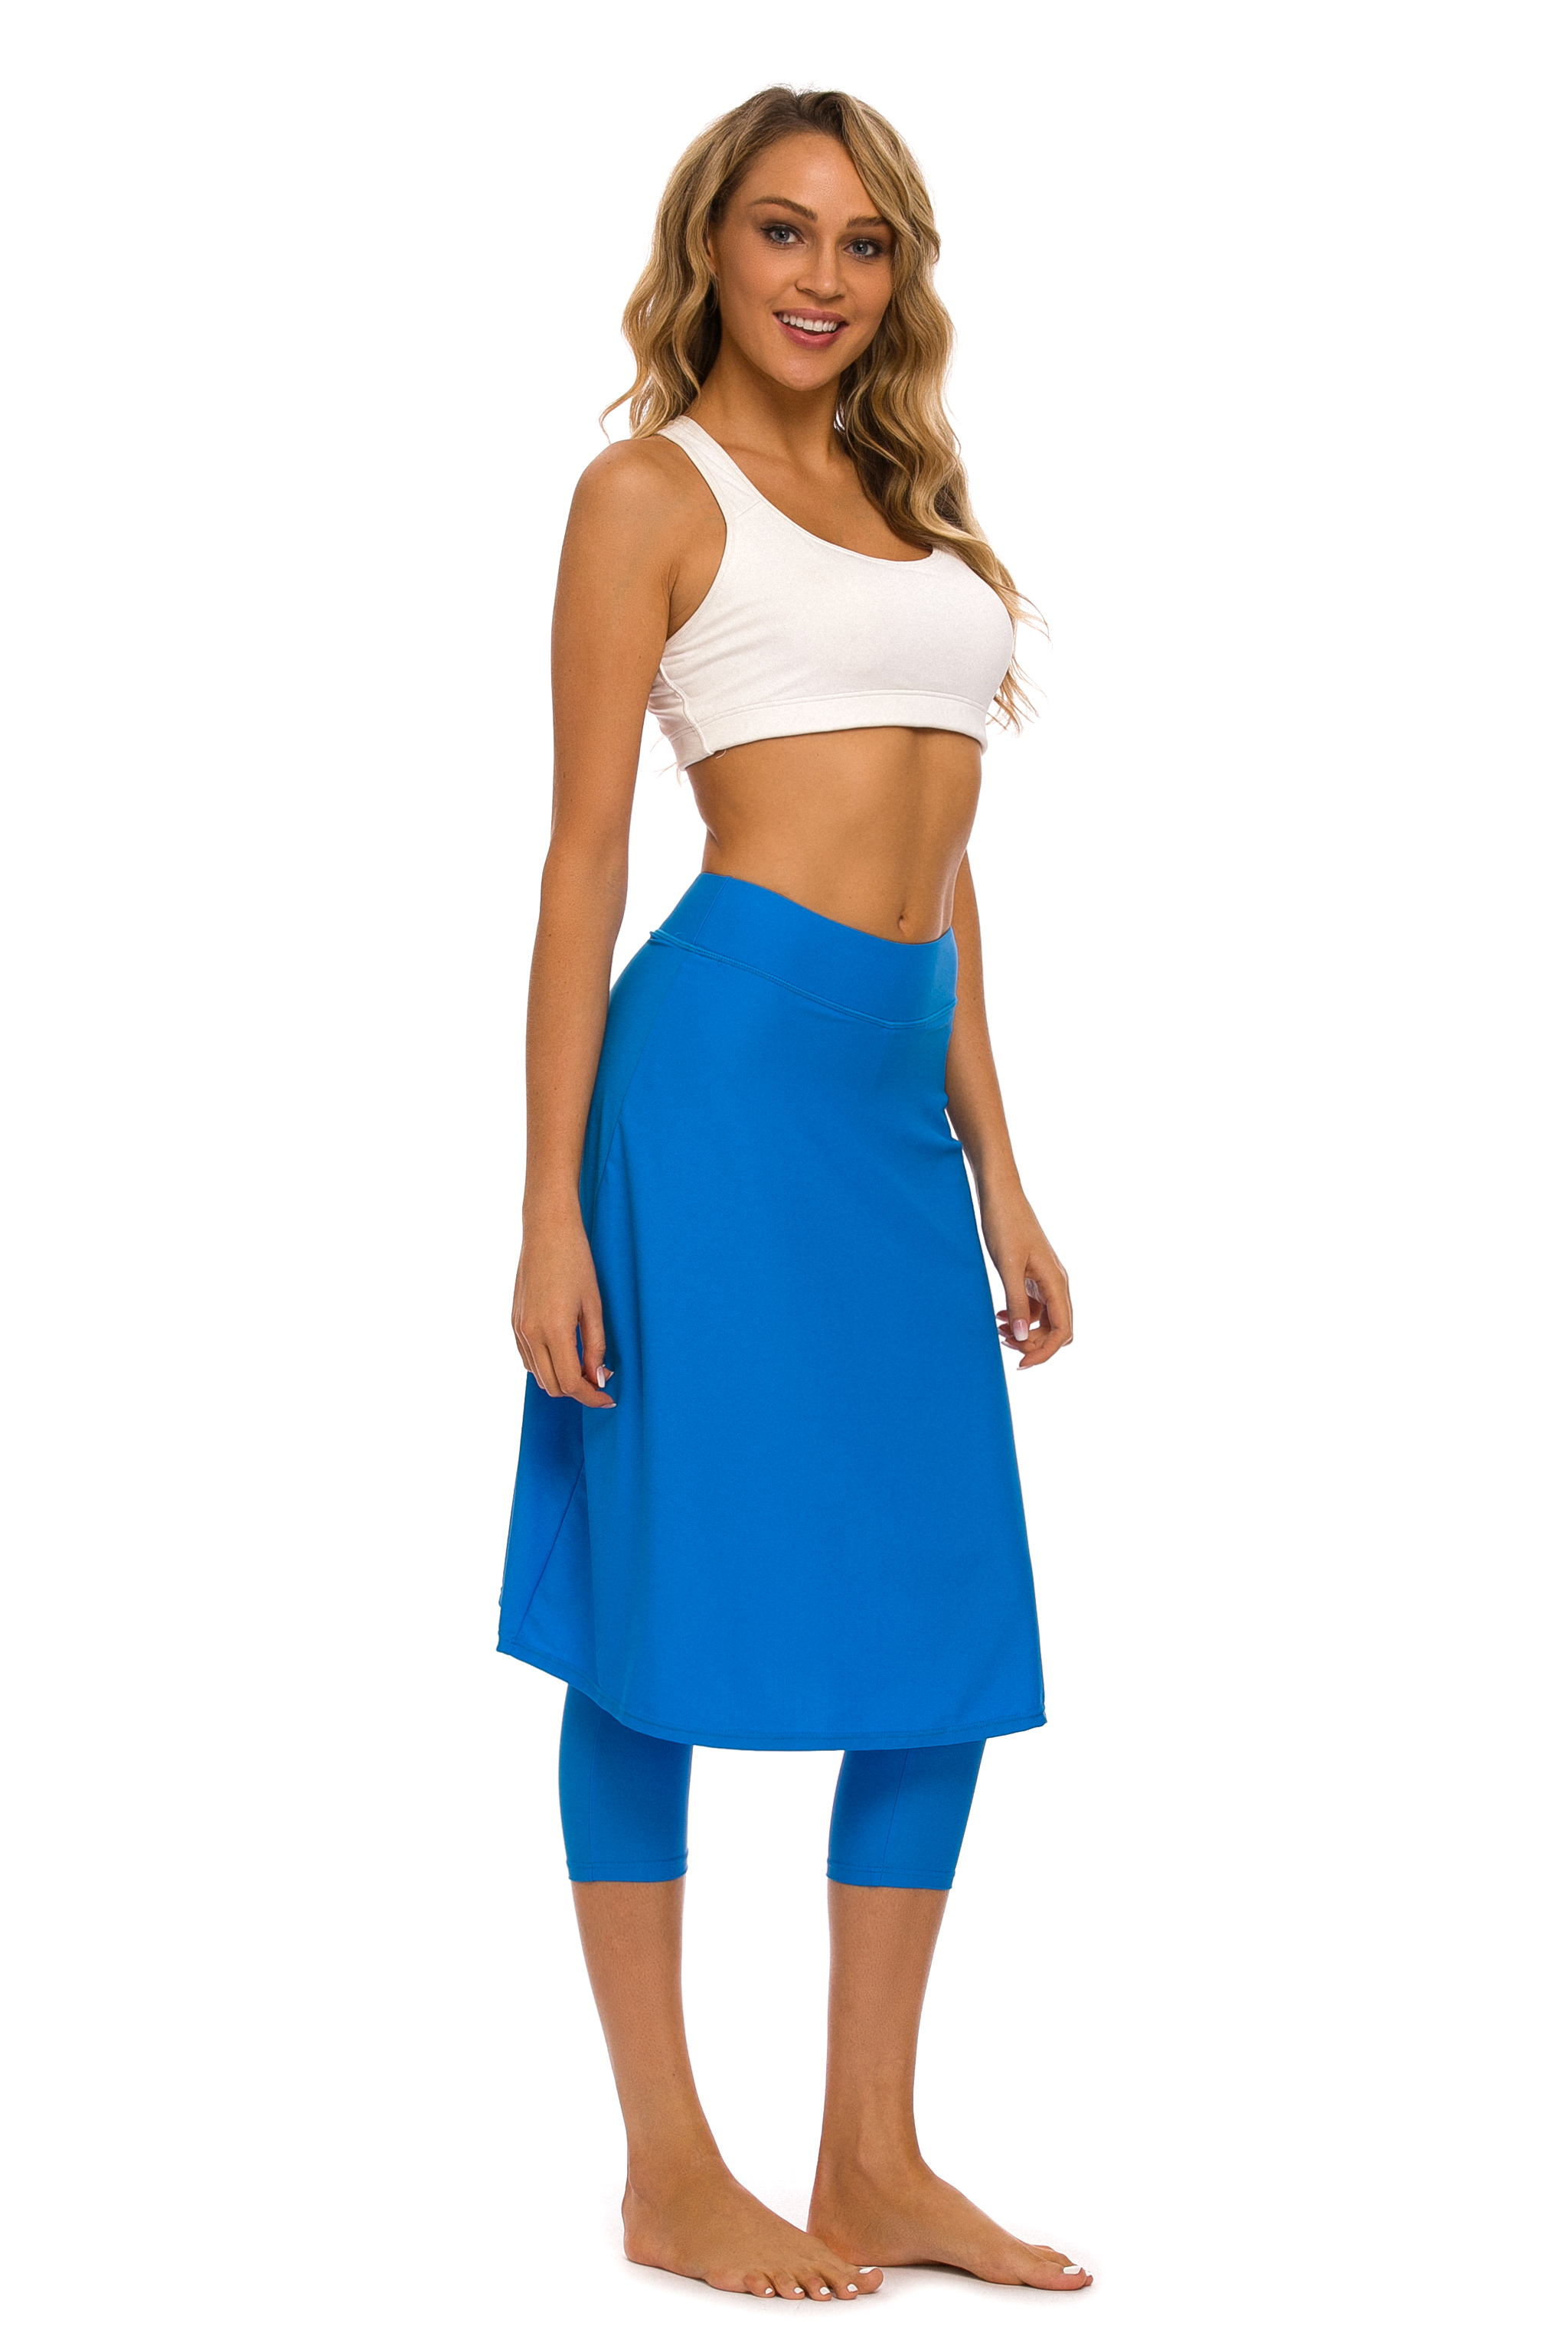 Women Long Skirted With Swim Legging